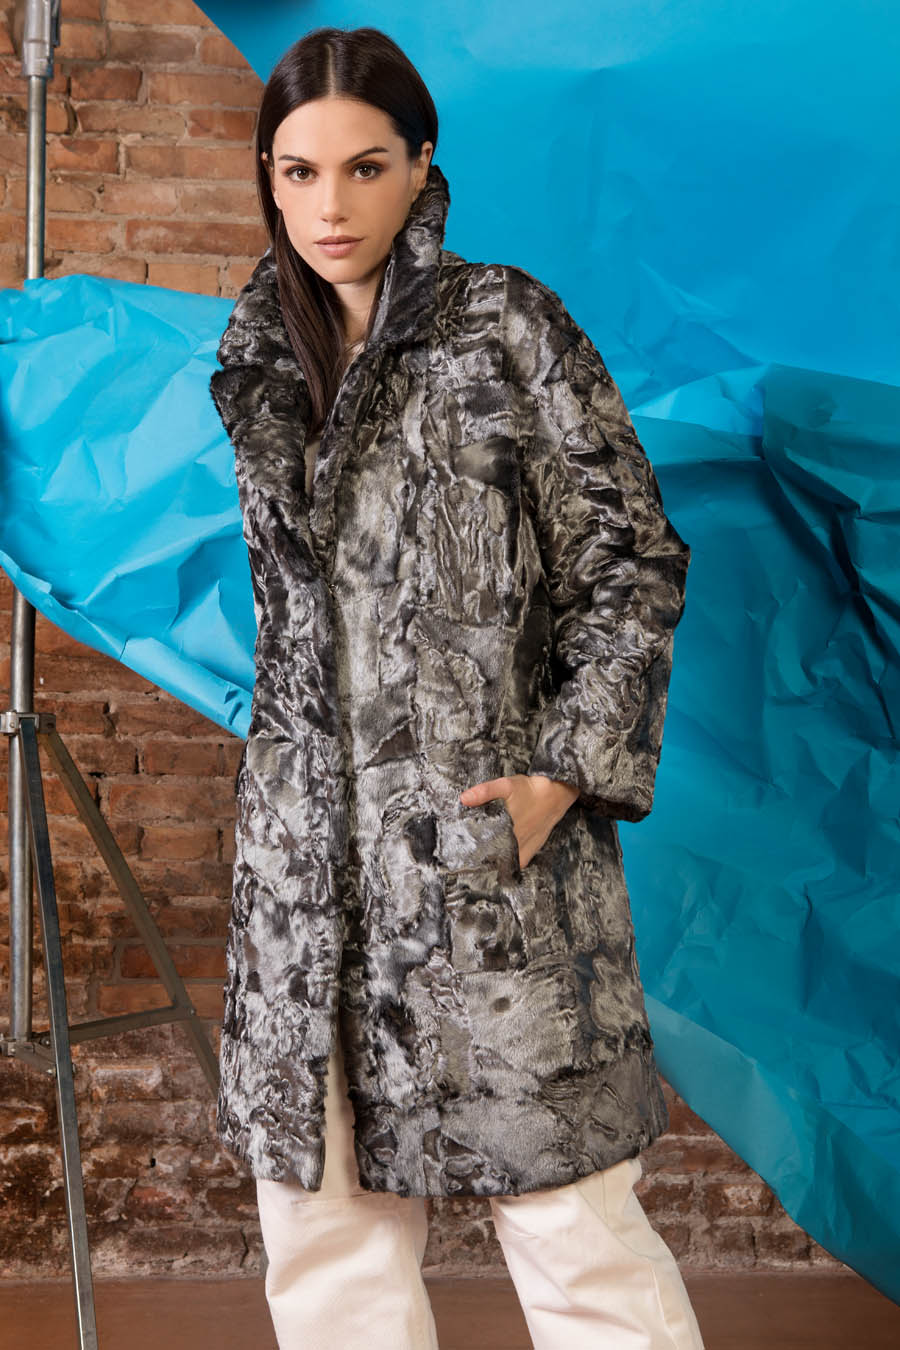 13 P1905P 19 02 giovi pelliccia fur grey - Fall Winter 2019-20